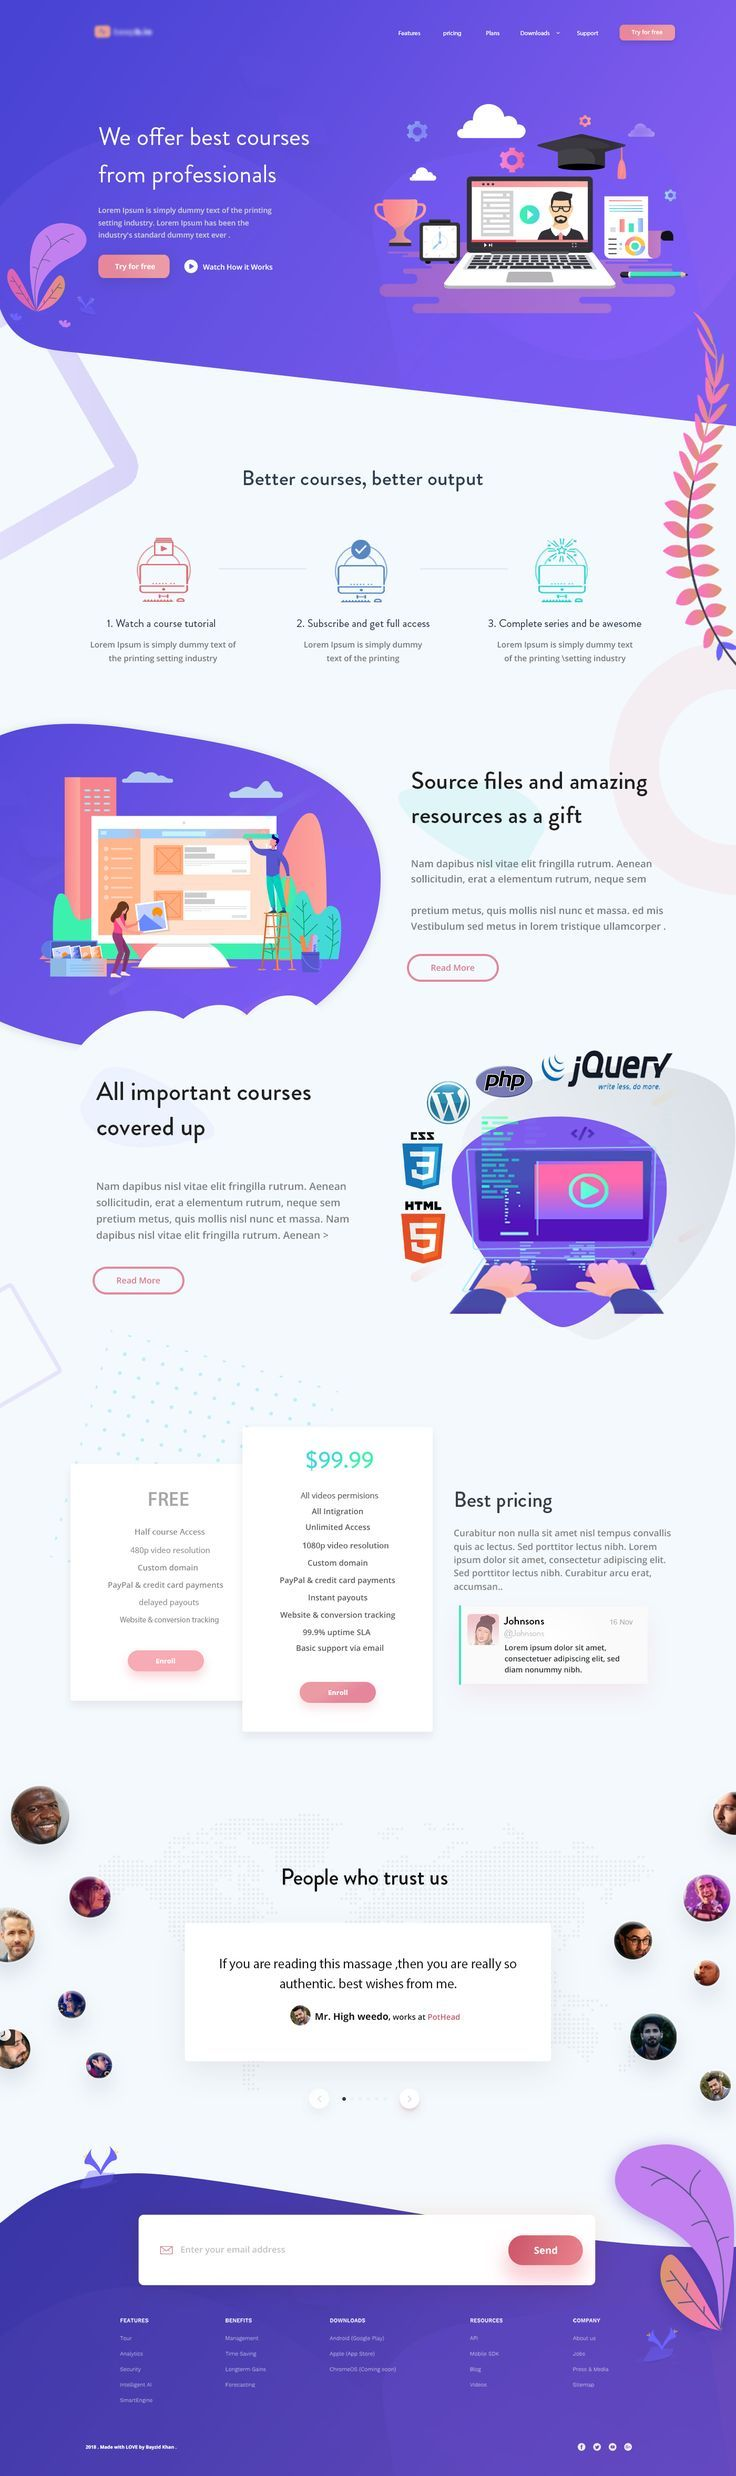 How To Design A Website The 4 Stages Process Web Design Tips Website Template Design Web Design Tips Web Design